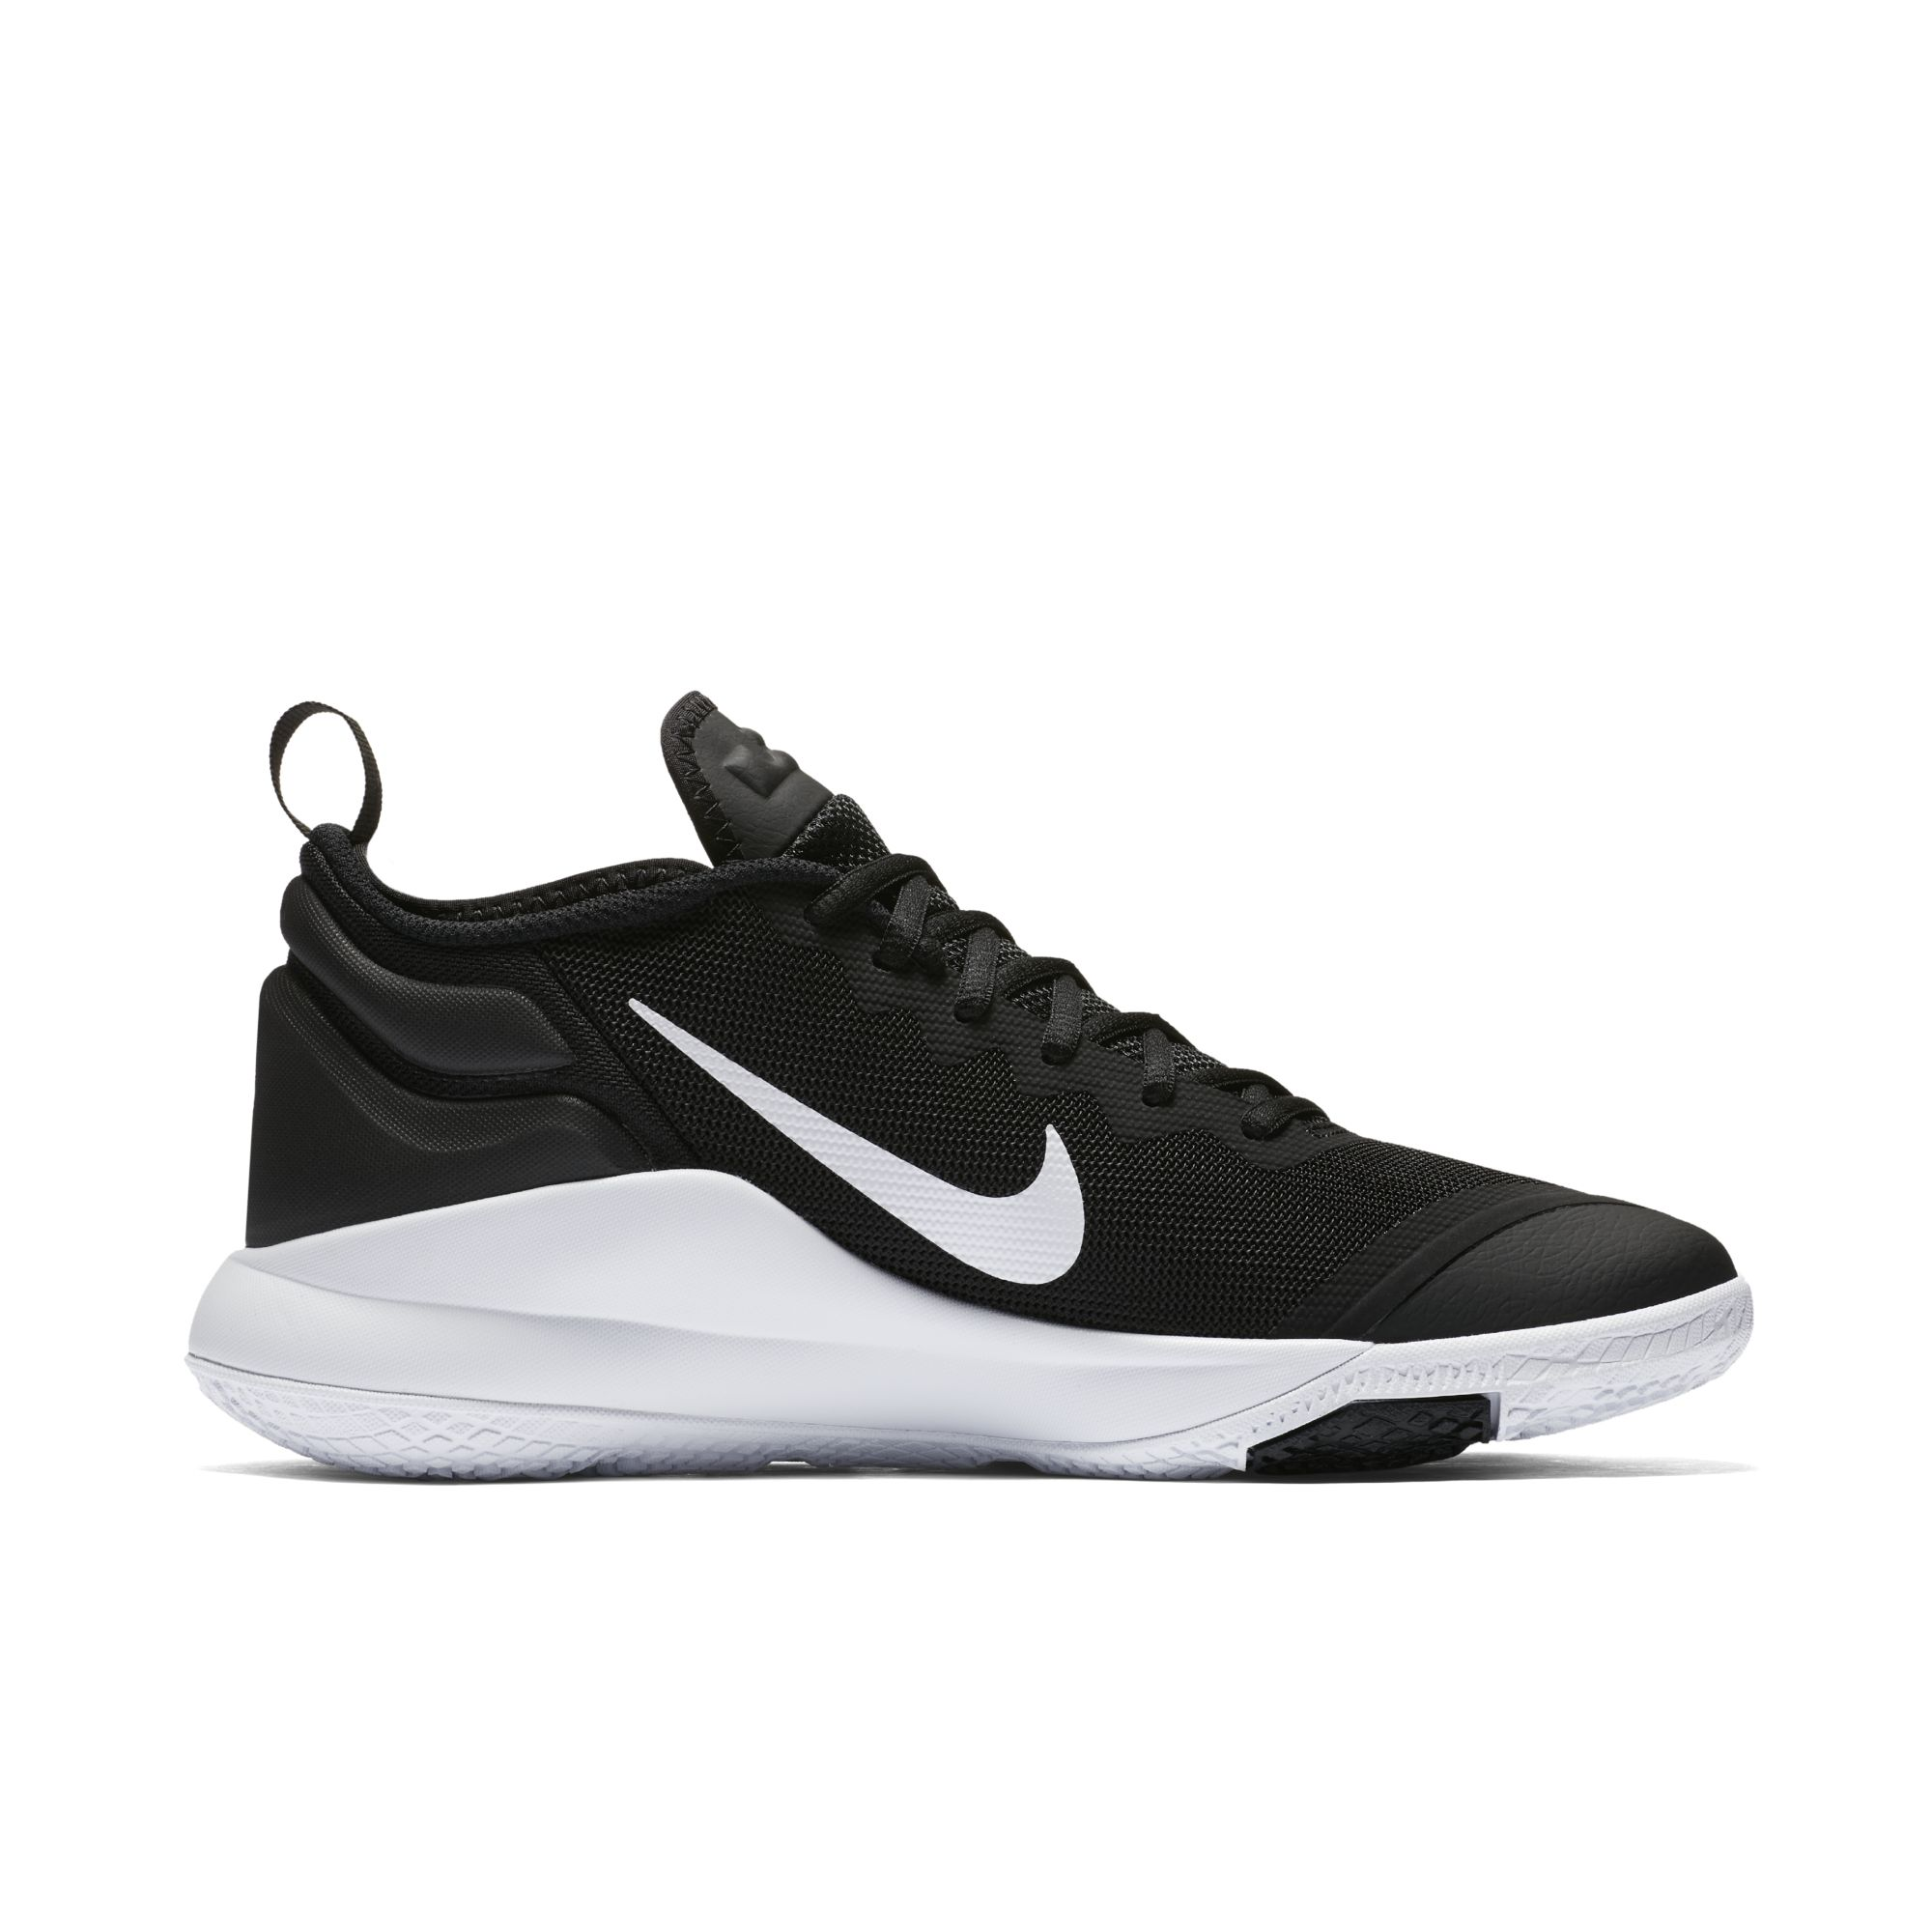 5cf7d43a3765 Original Authentic NIKE LEBRON WITNESS II EP Lightweight Support Men s  Basketball Shoes Breathable Low Top Sneakers Cozy AA3820-in Basketball Shoes  from ...